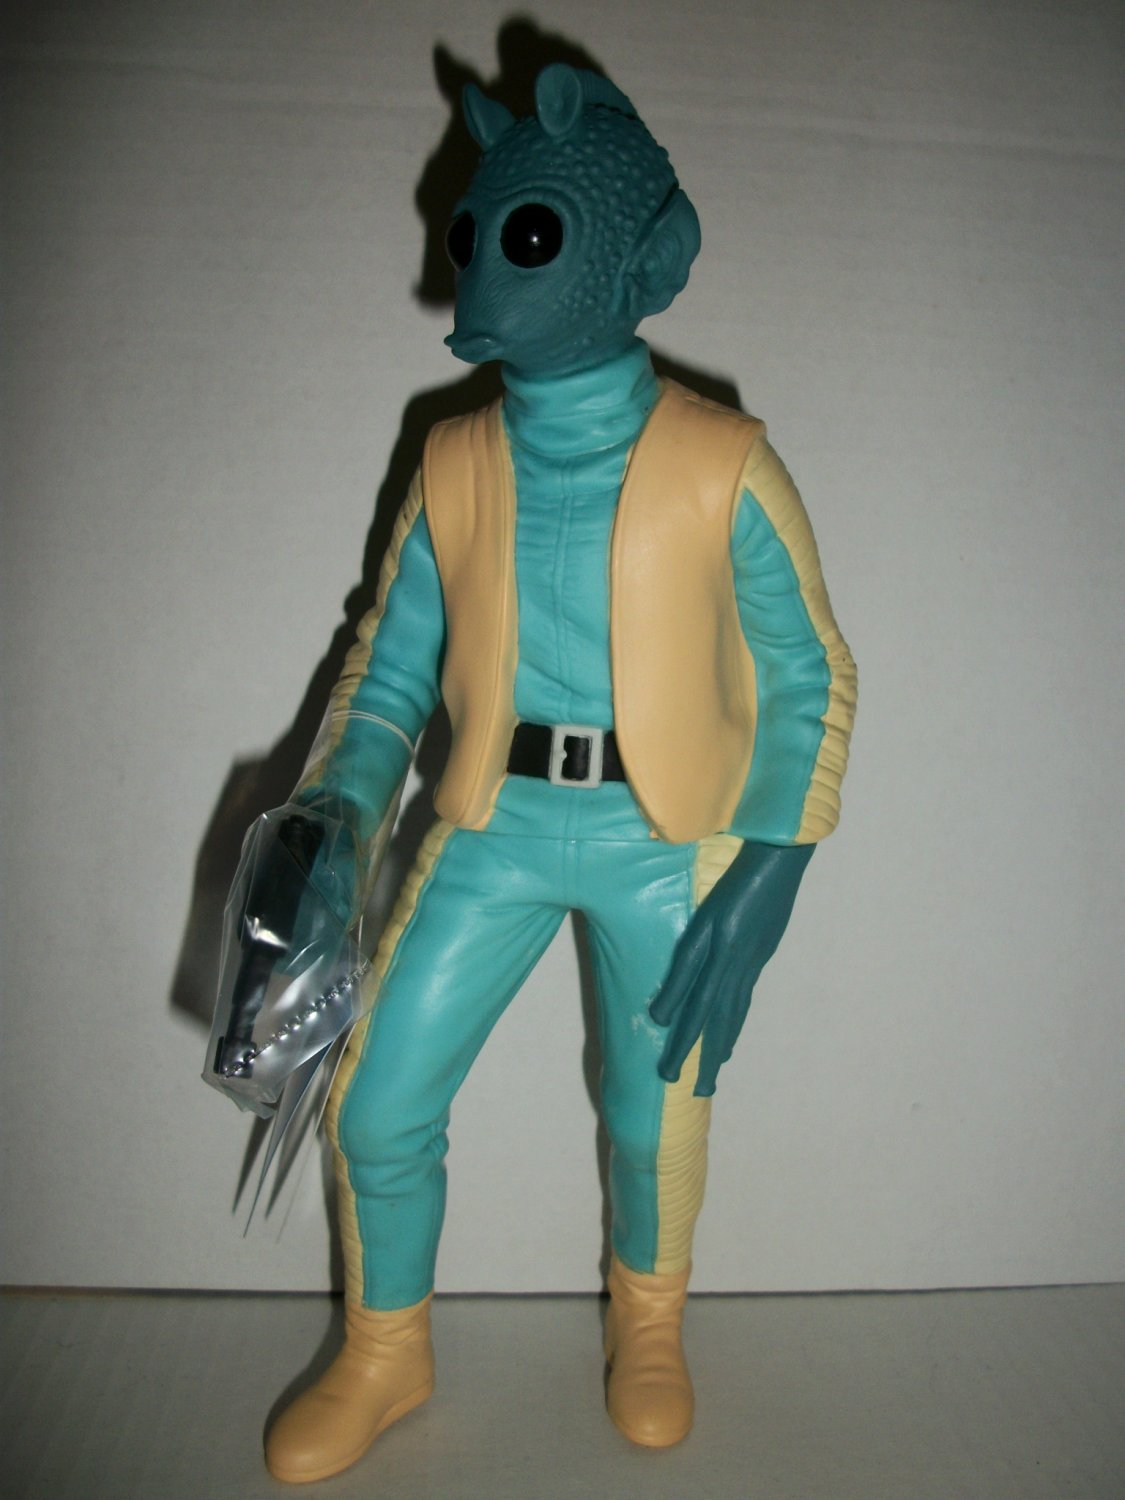 STAR WARS 10 in VINYL GREEDO Figure